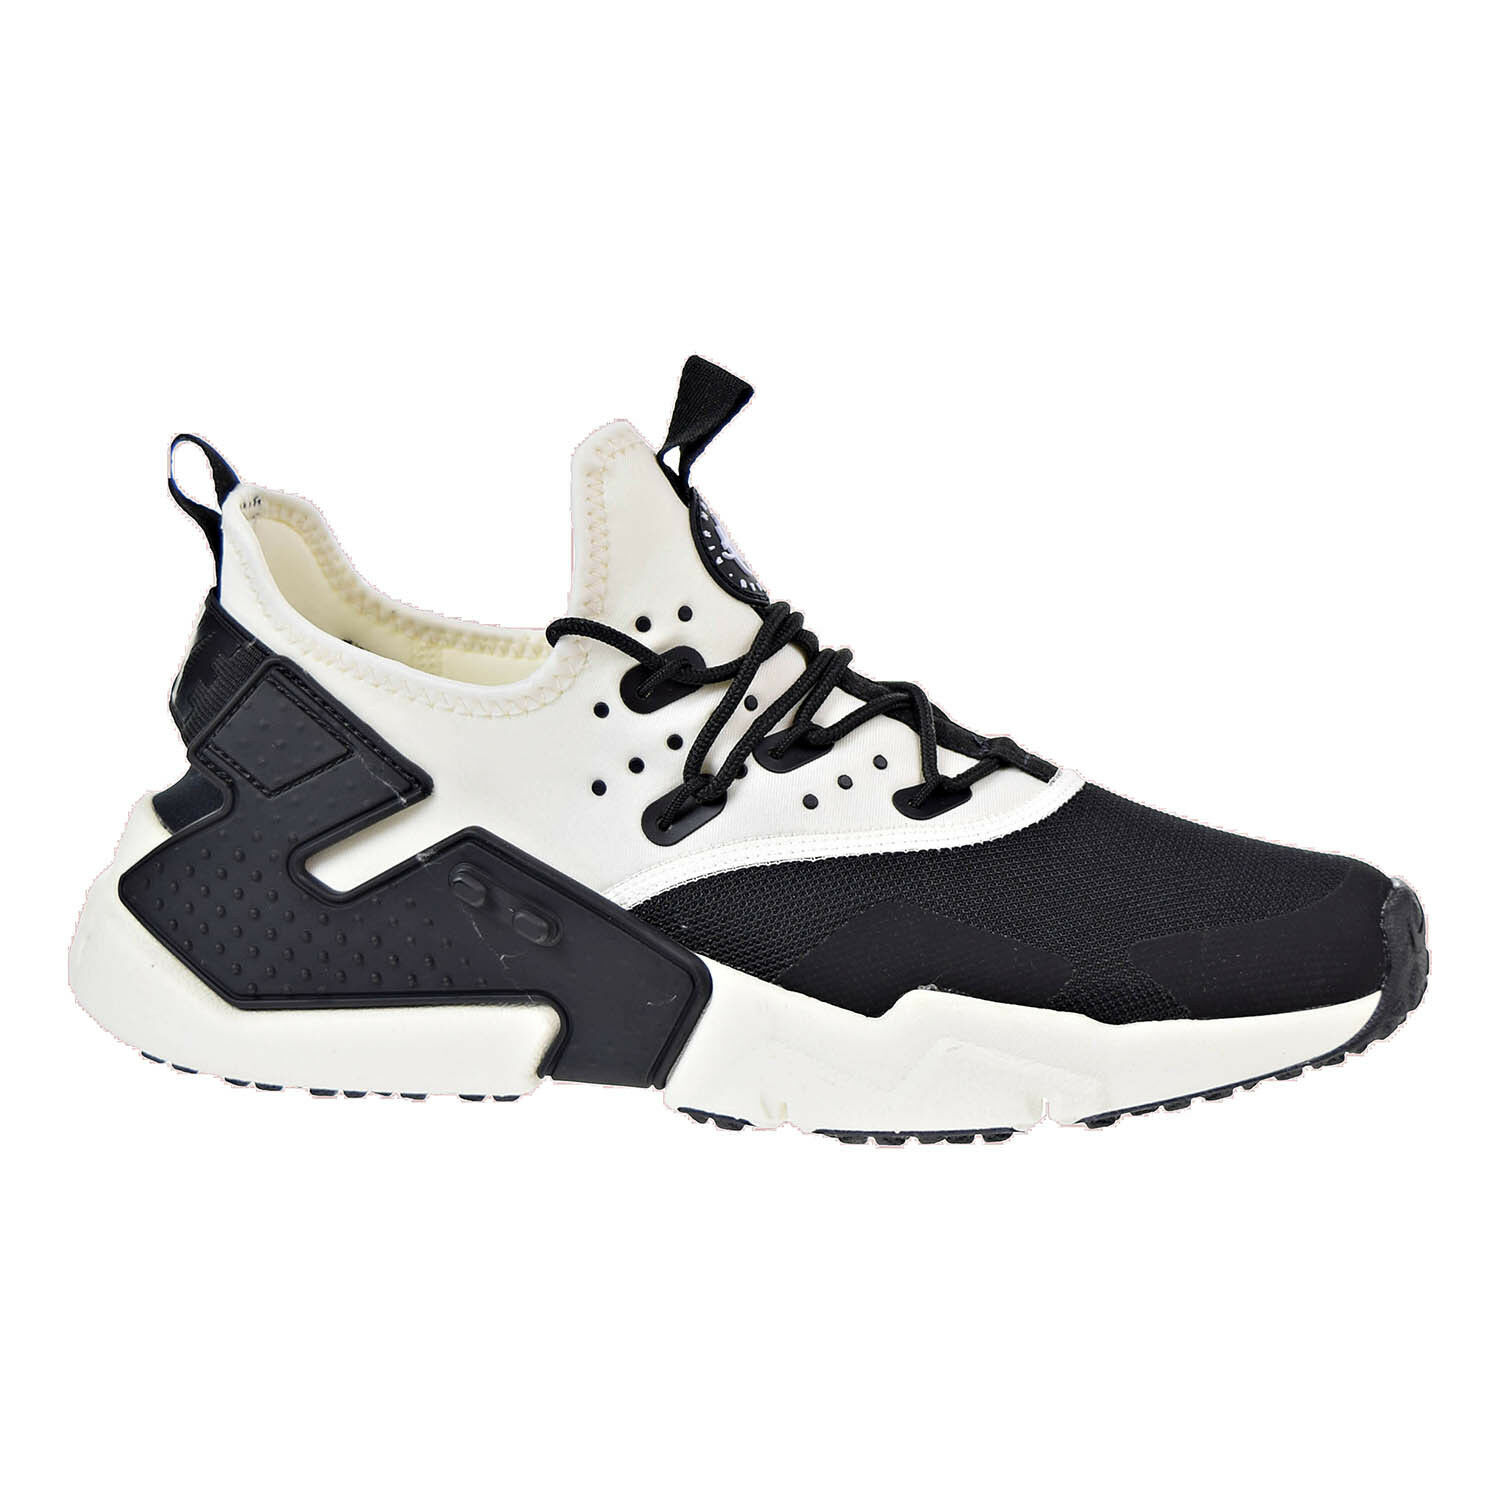 Nike Air Huarache Drift Men's Shoes Black/Sail White AH7334-002